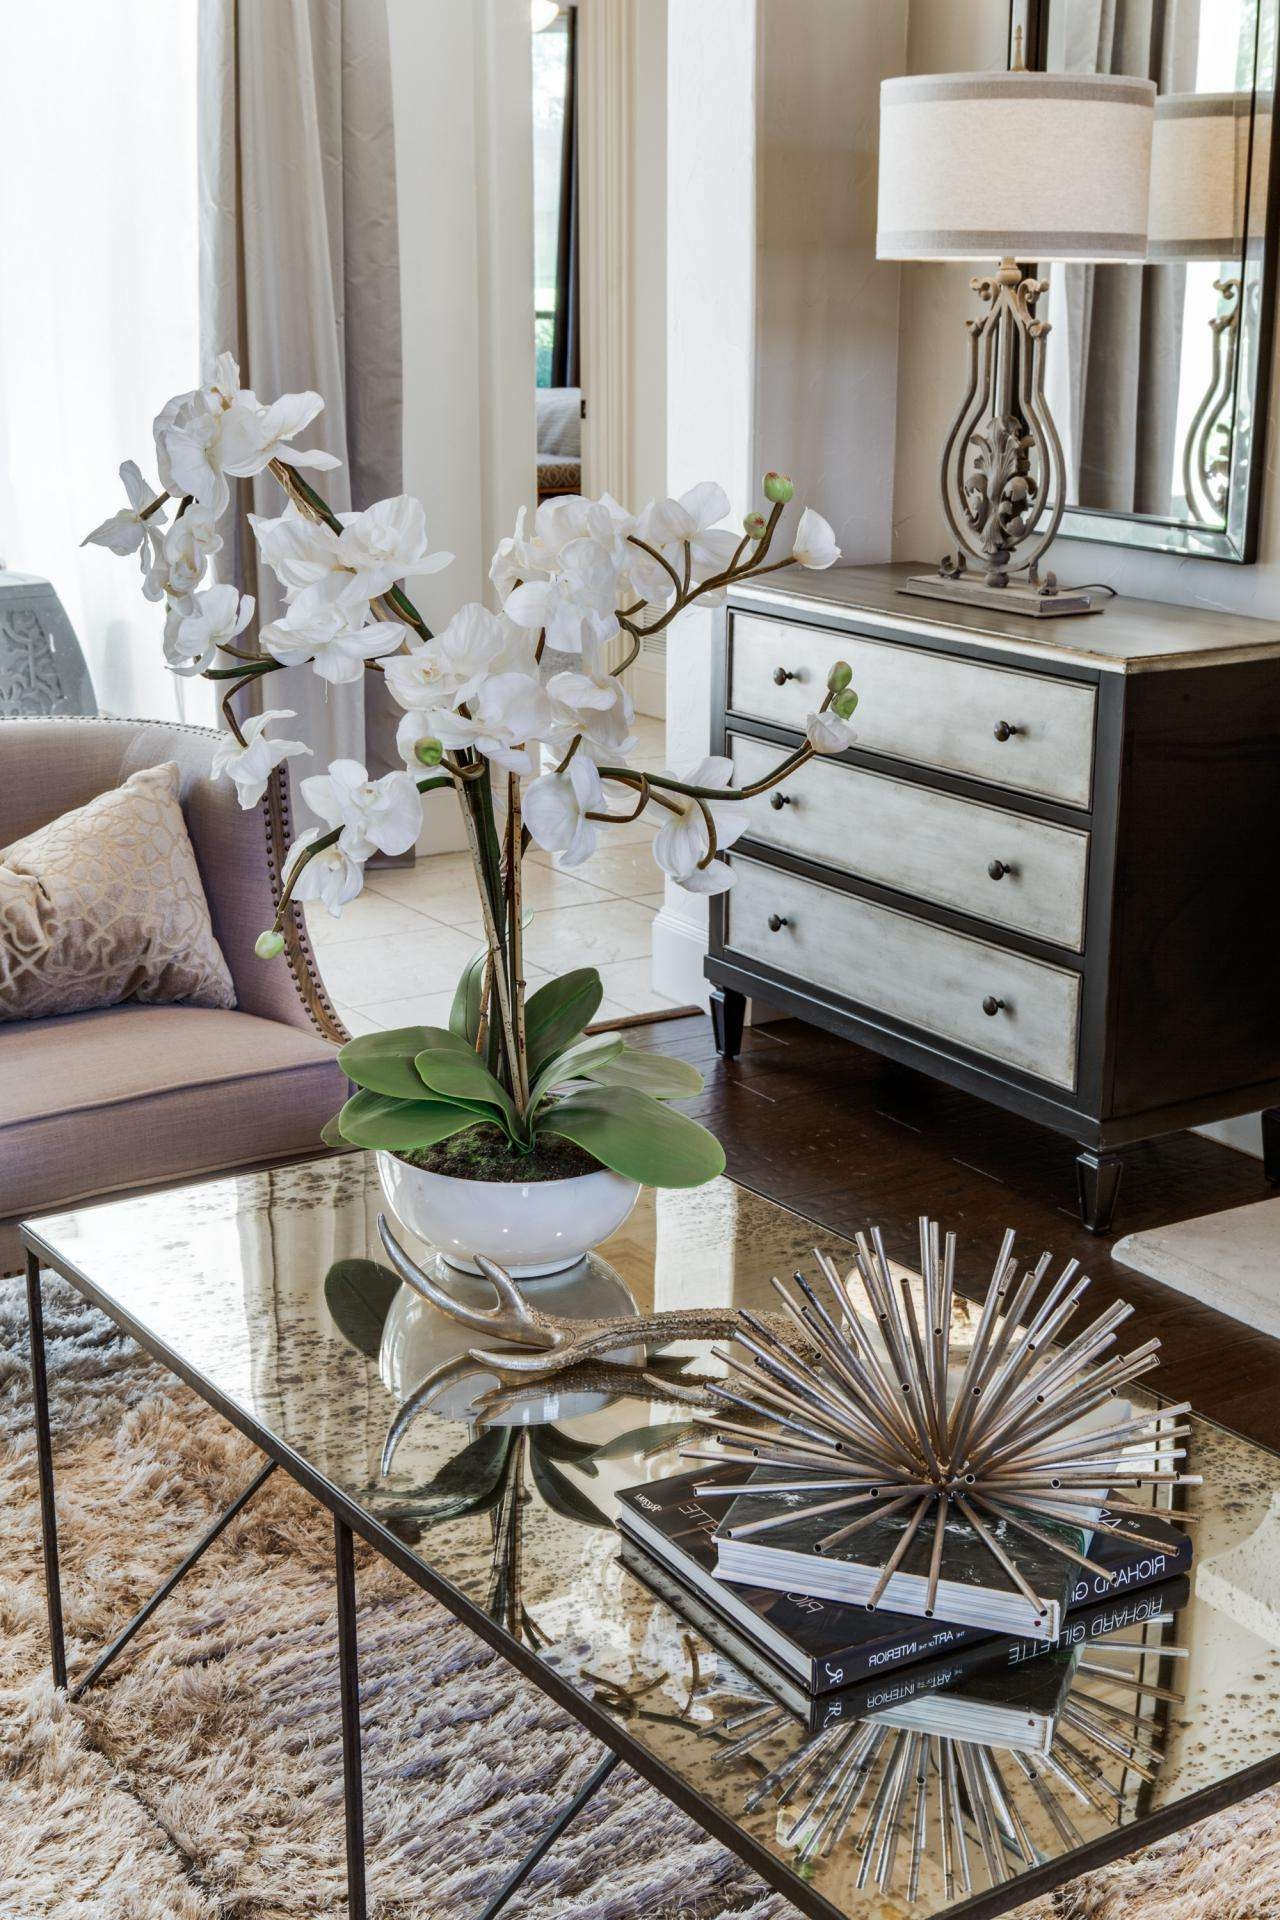 Pretty White Orchid Adorns Mercury Glass Coffee Table How To Style Pertaining To Recent Mercury Glass Coffee Tables (View 15 of 20)